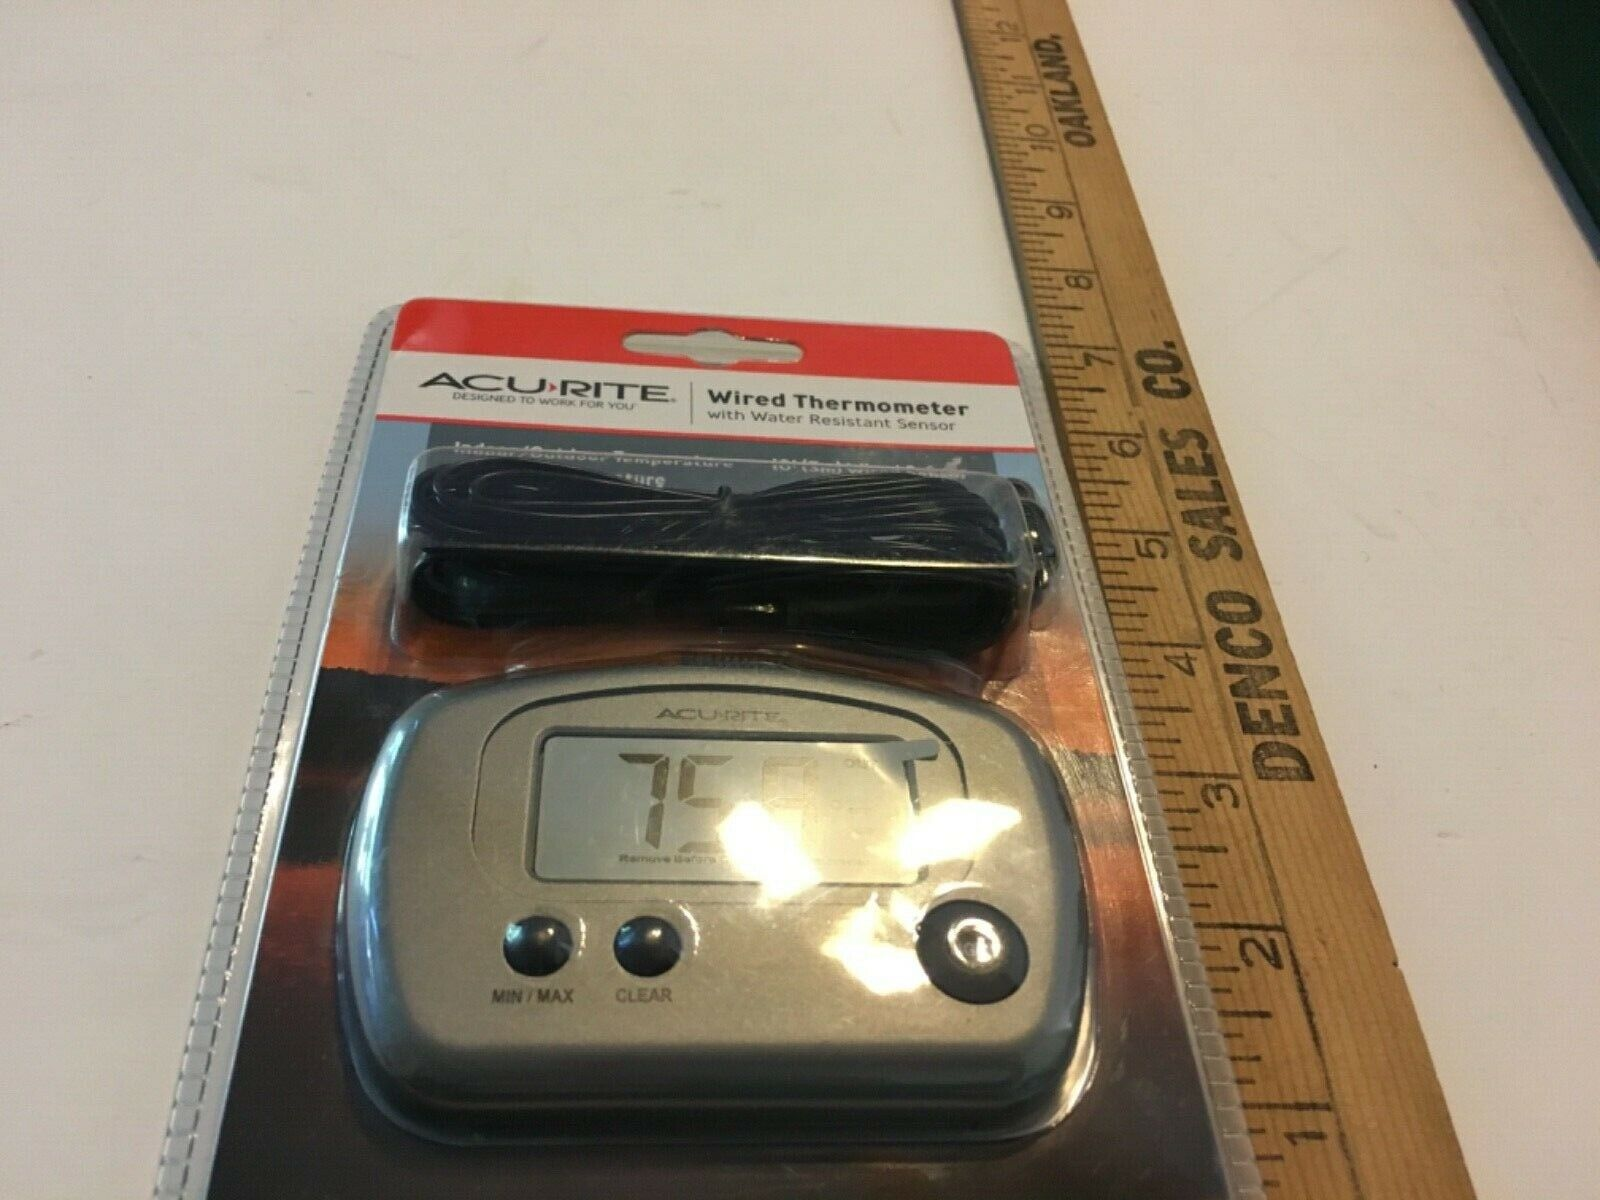 Acurite Wired Thermometer Water Resistant NIP Indoor Outdoor RV SKU 005-047